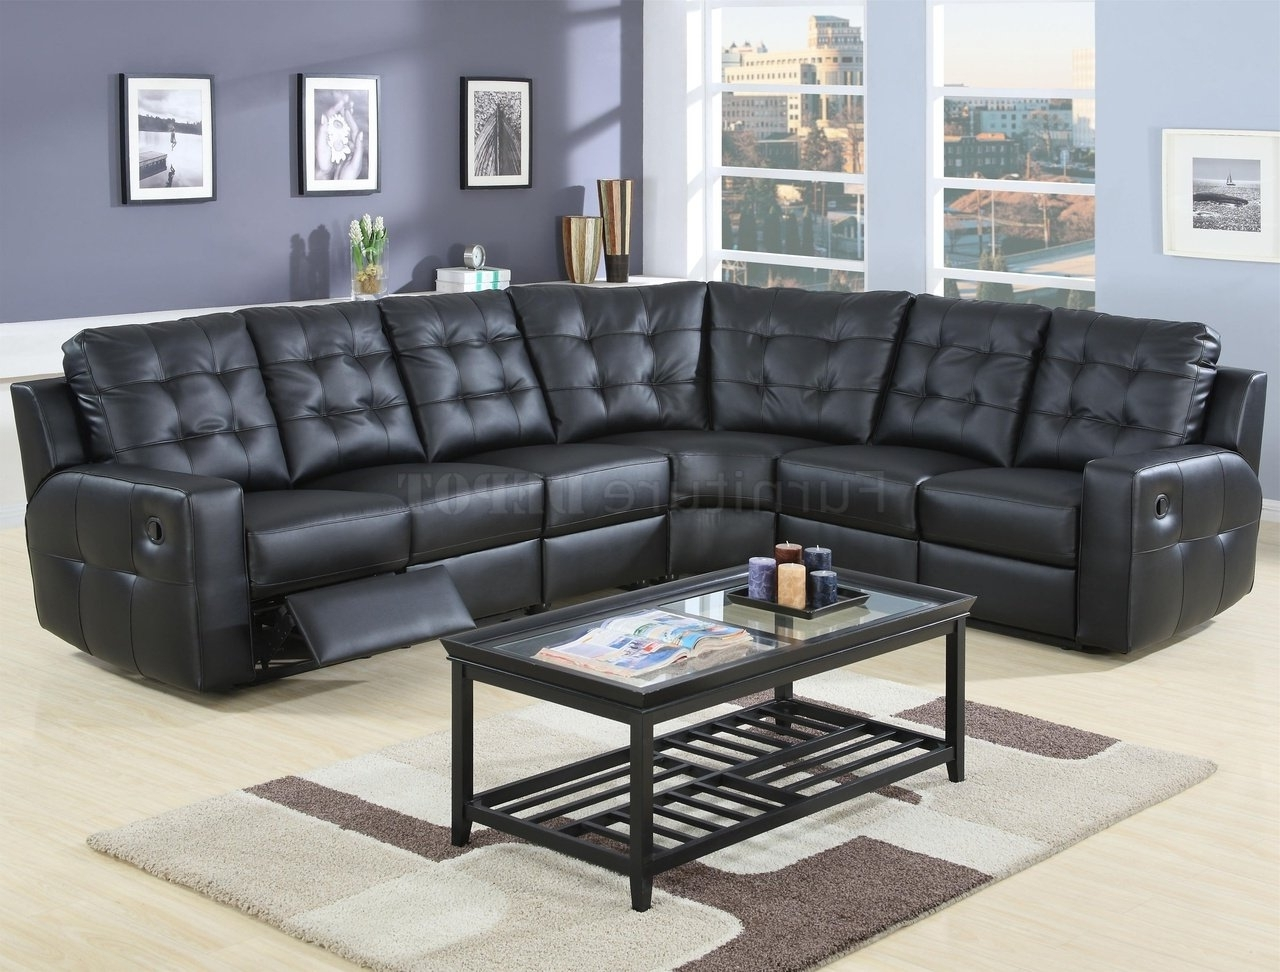 Recent The Most Popular Sectional Sofas Austin Tx 80 On Leather Reclining With Regard To Leather Recliner Sectional Sofas (View 6 of 15)